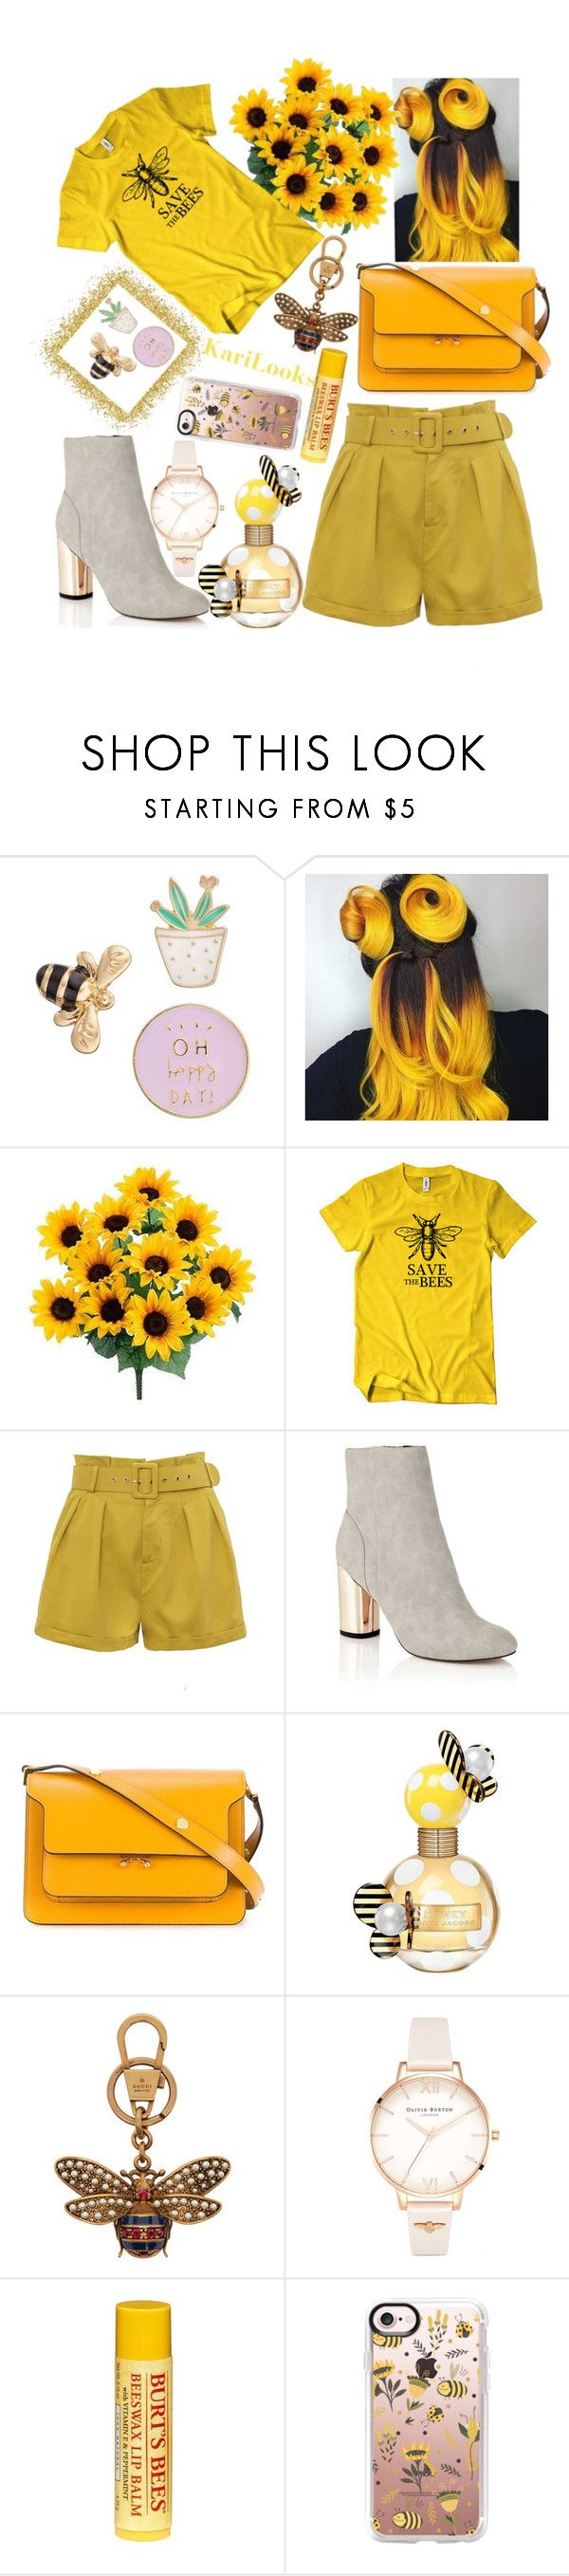 """SAVE the BEES 🐝"" by karilooks ❤ liked on Polyvore featuring LC Lauren Conrad, Miss Selfridge, Marni, Marc Jacobs, Gucci, Olivia Burton, Burt's Bees and Casetify"